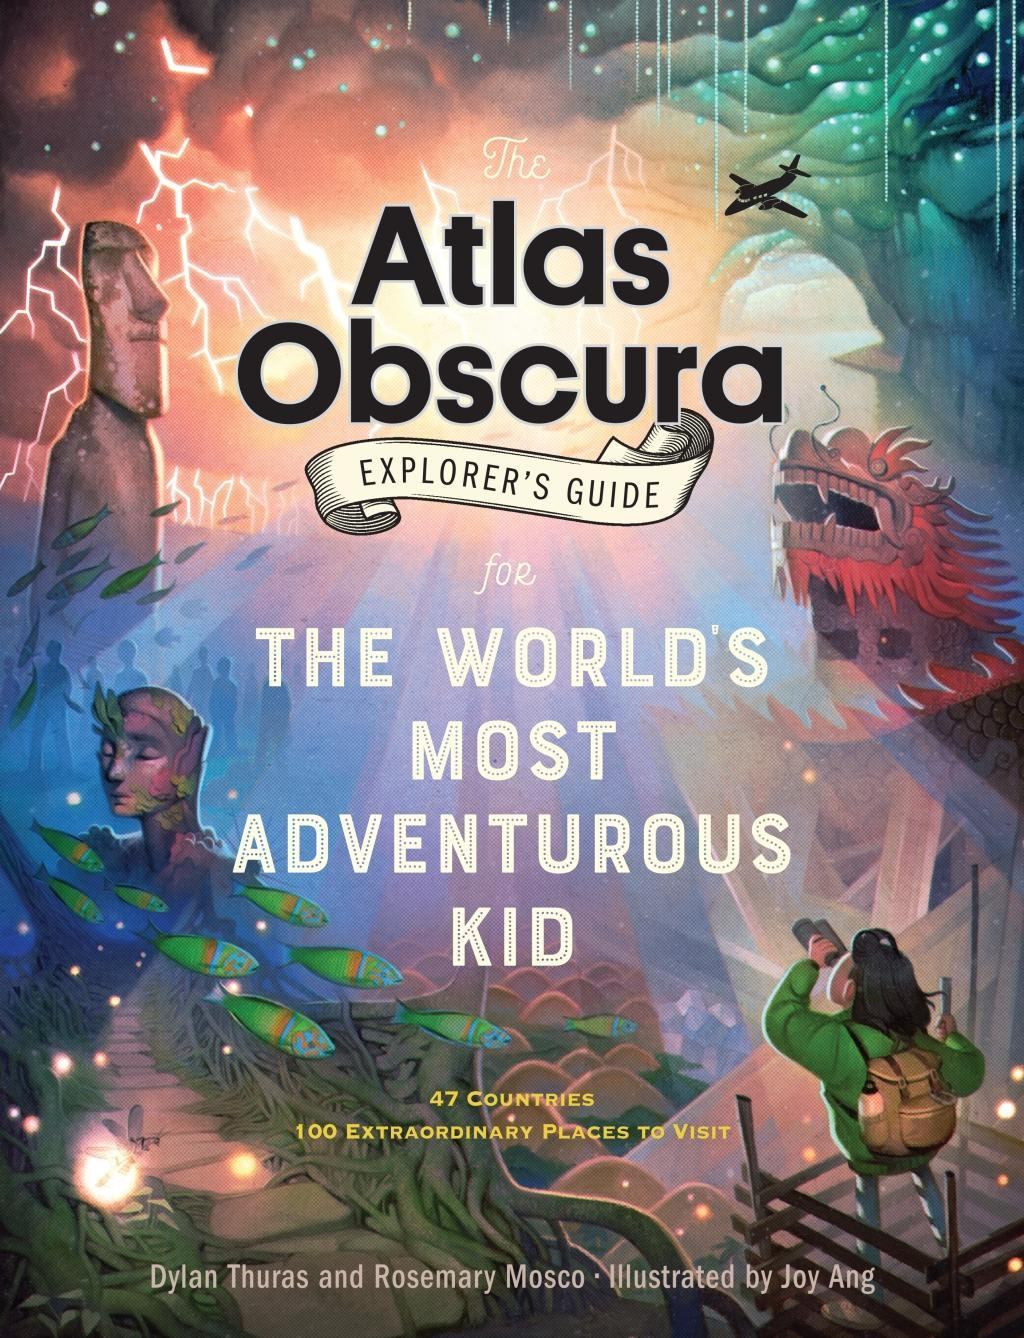 82e230367f The Atlas Obscura Explorer's Guide for the World's Most Adventurous Kid by  Dylan Thuras, Rosemary